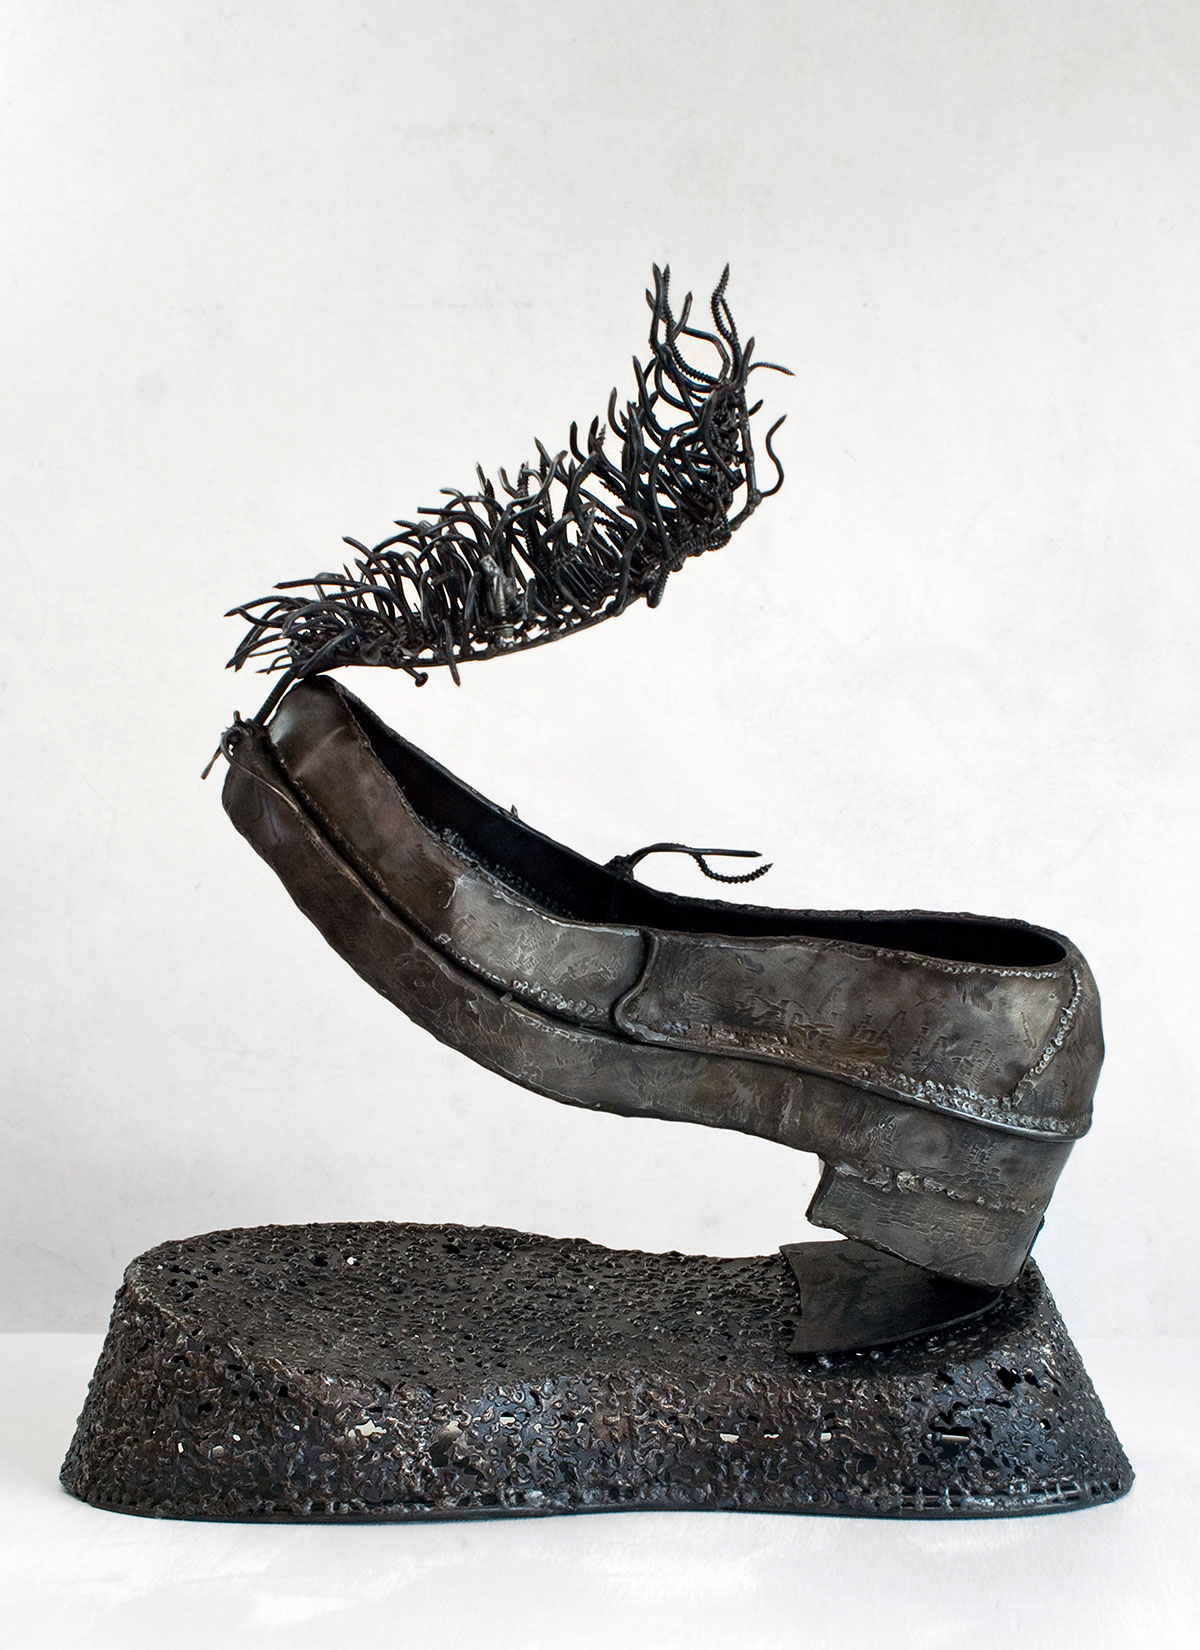 "Fortified Loafer with Shadow, steel, 2' x 1'2"" x 1'9"", 2008"